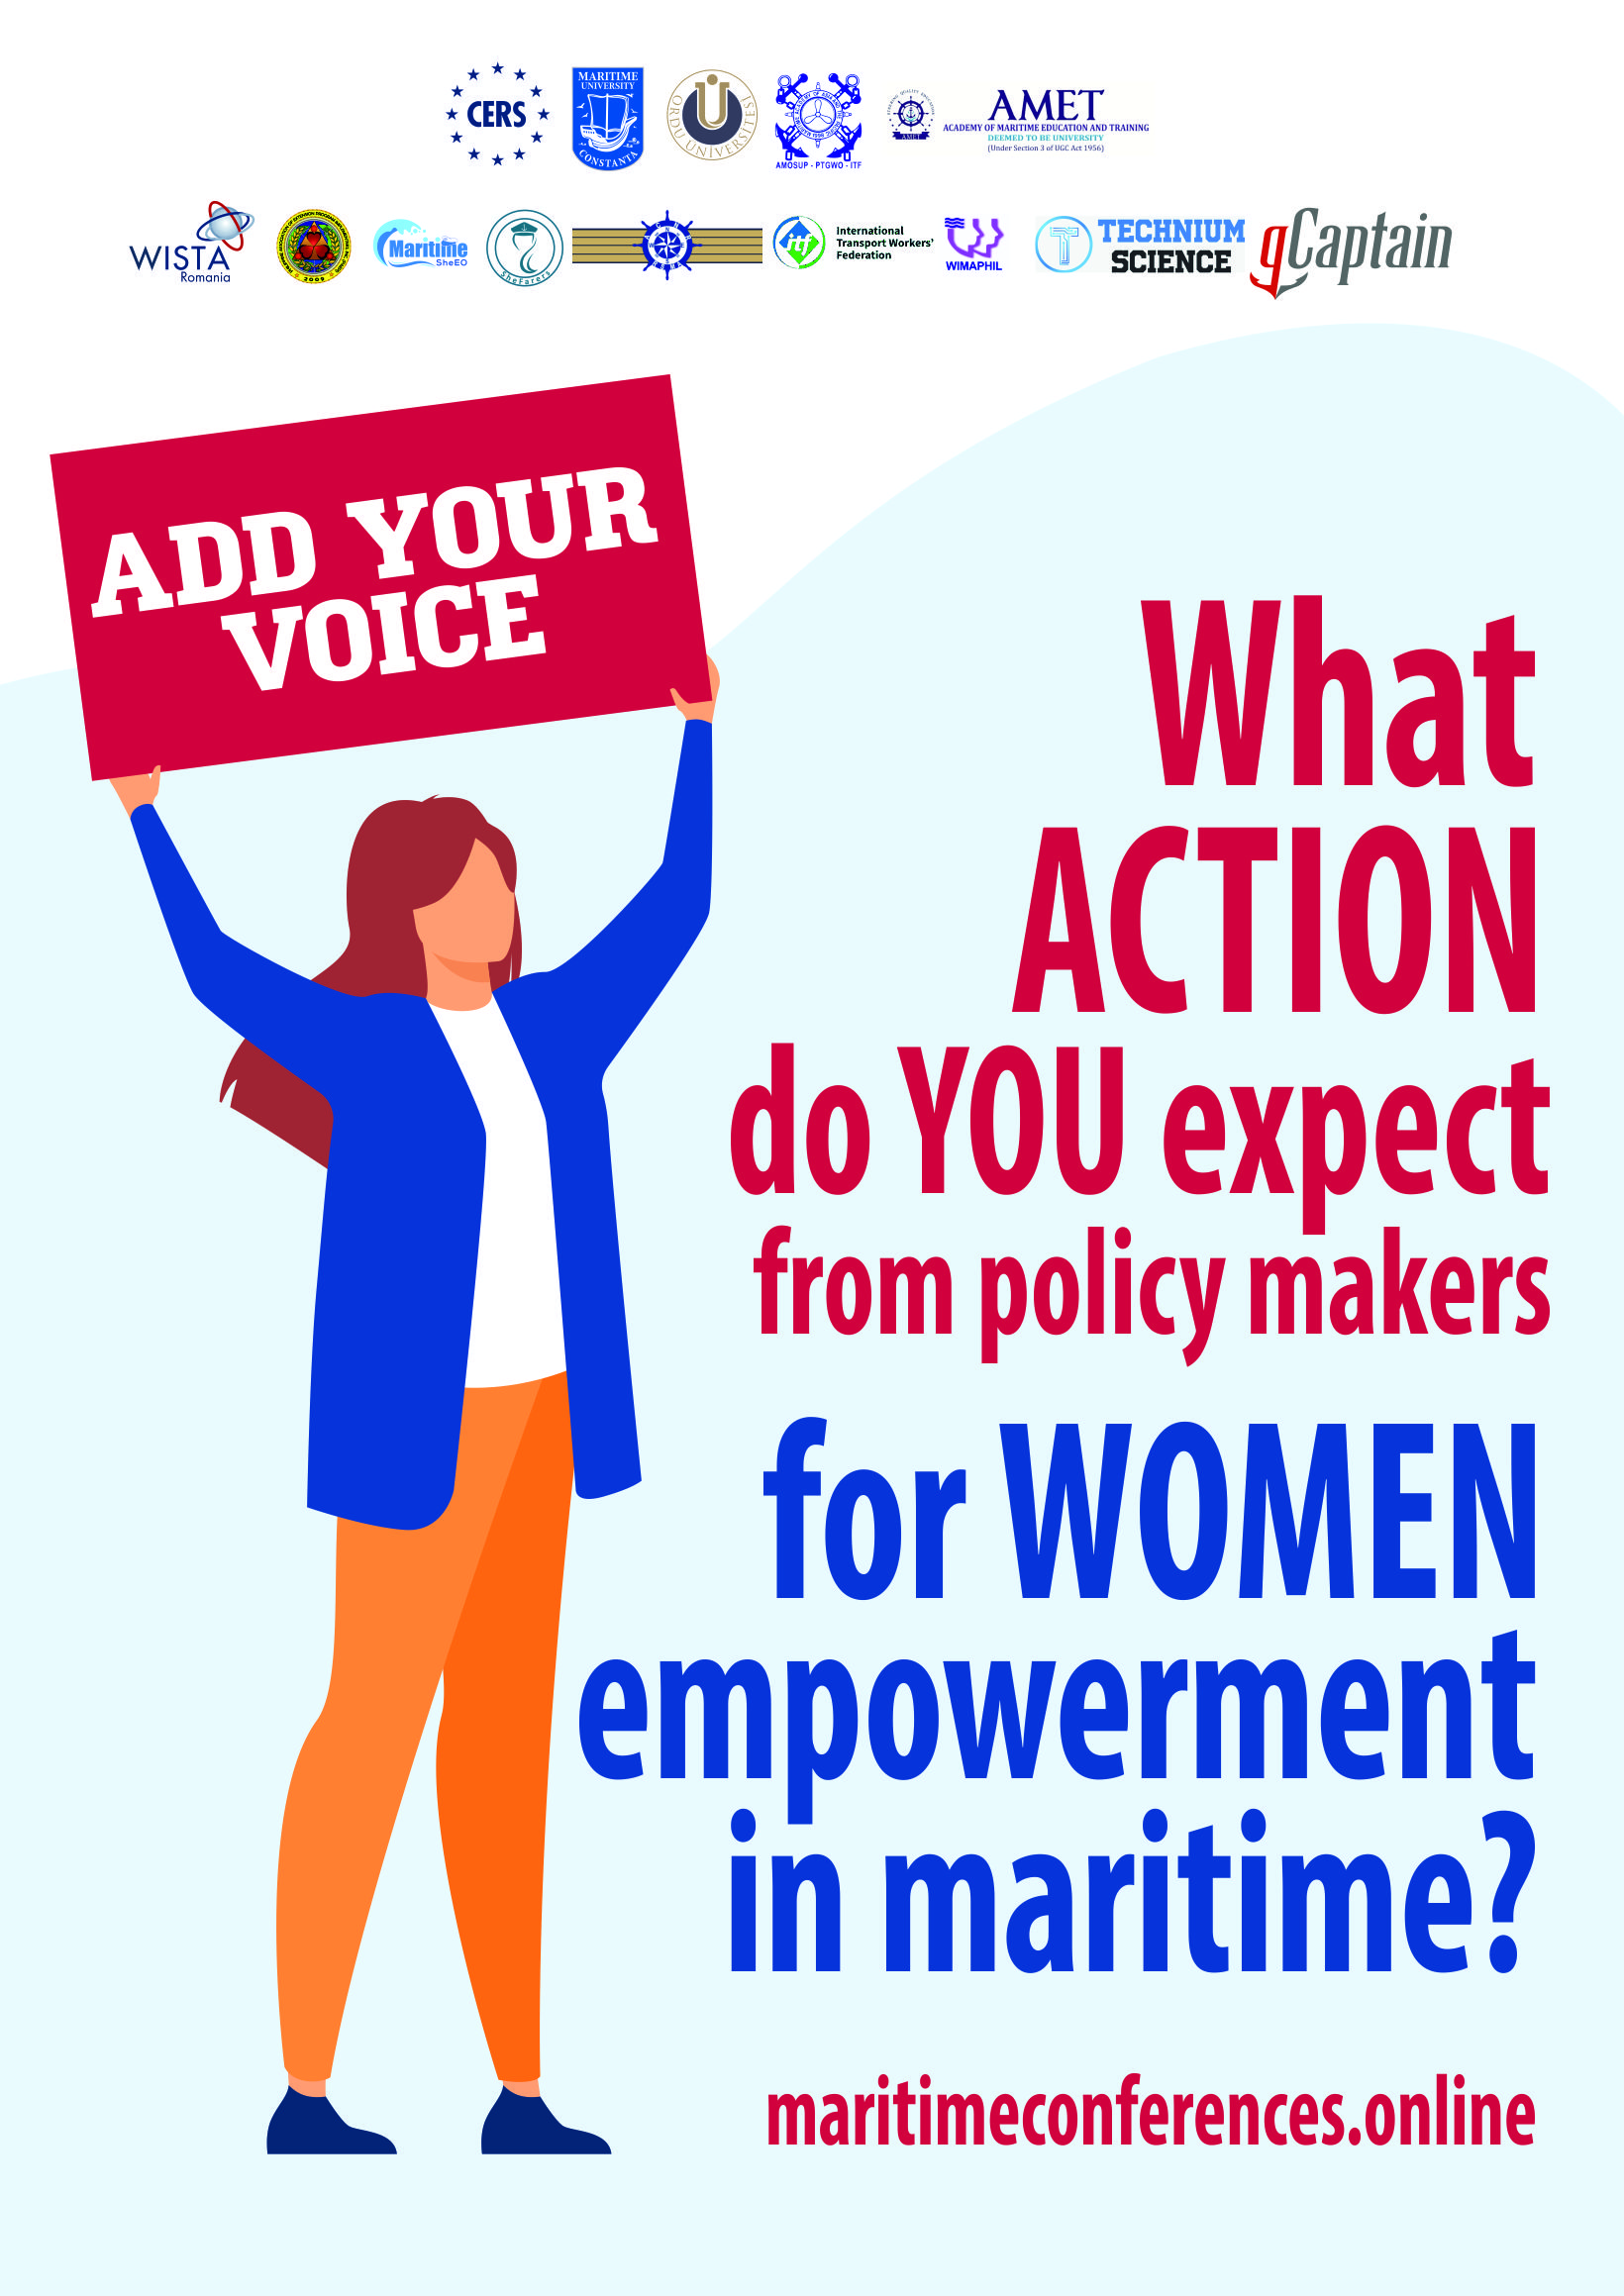 Send your suggestions for AGENDA OF CHANGE: Gender Equality in Maritime (SDG 5) !